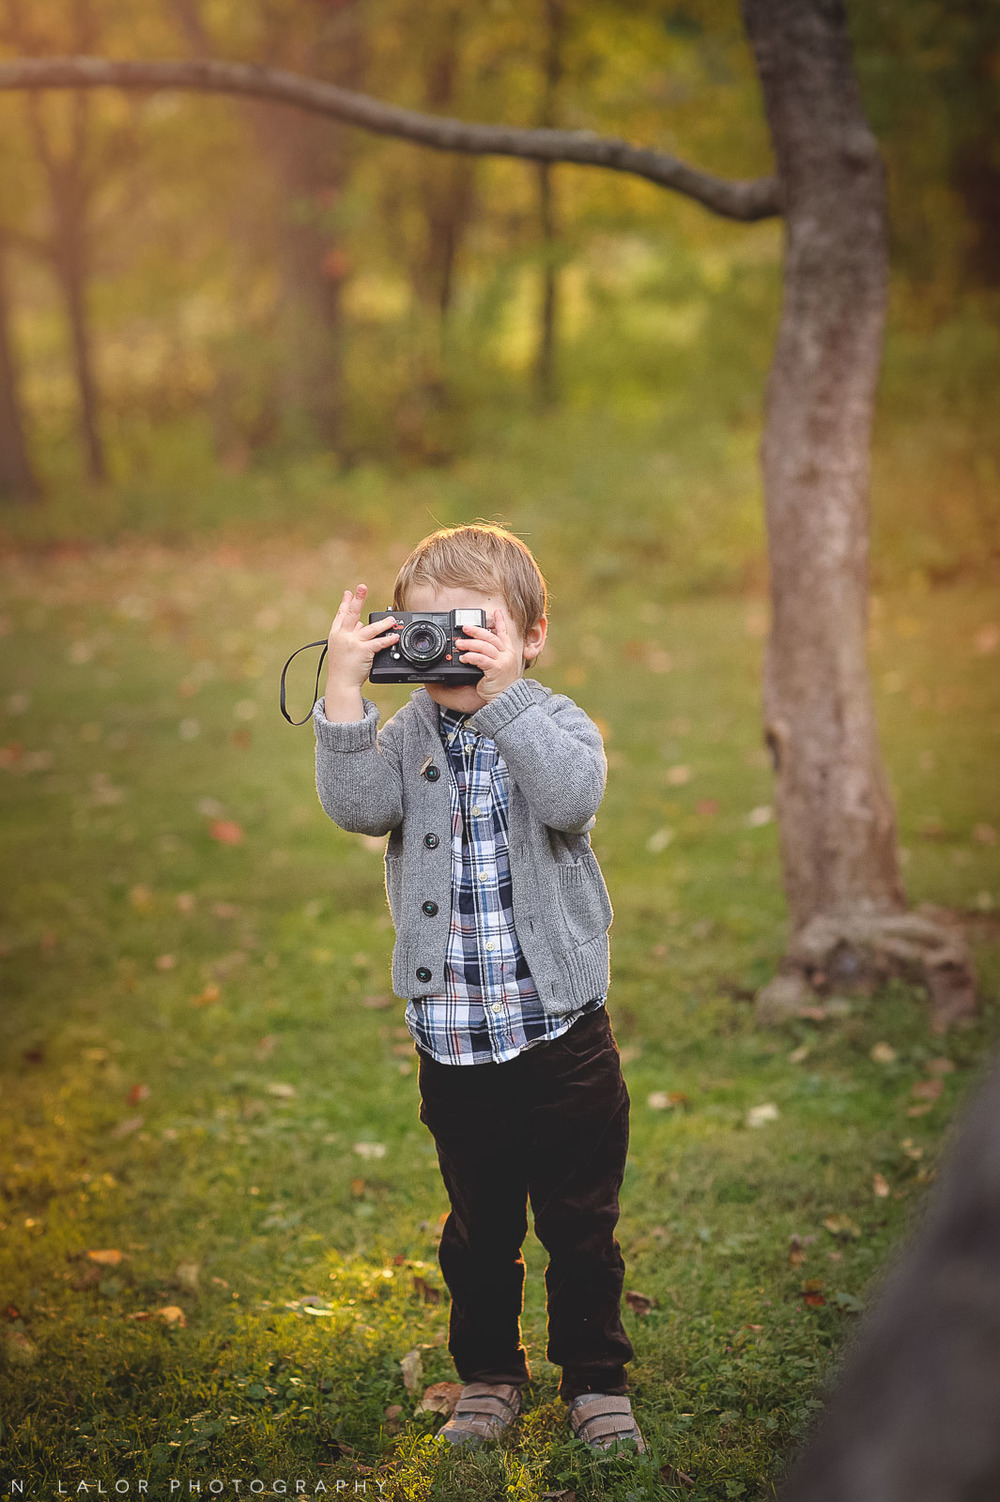 nlalor-photography-boy-fall-new-canaan-nature-center-photo-session-3.jpg